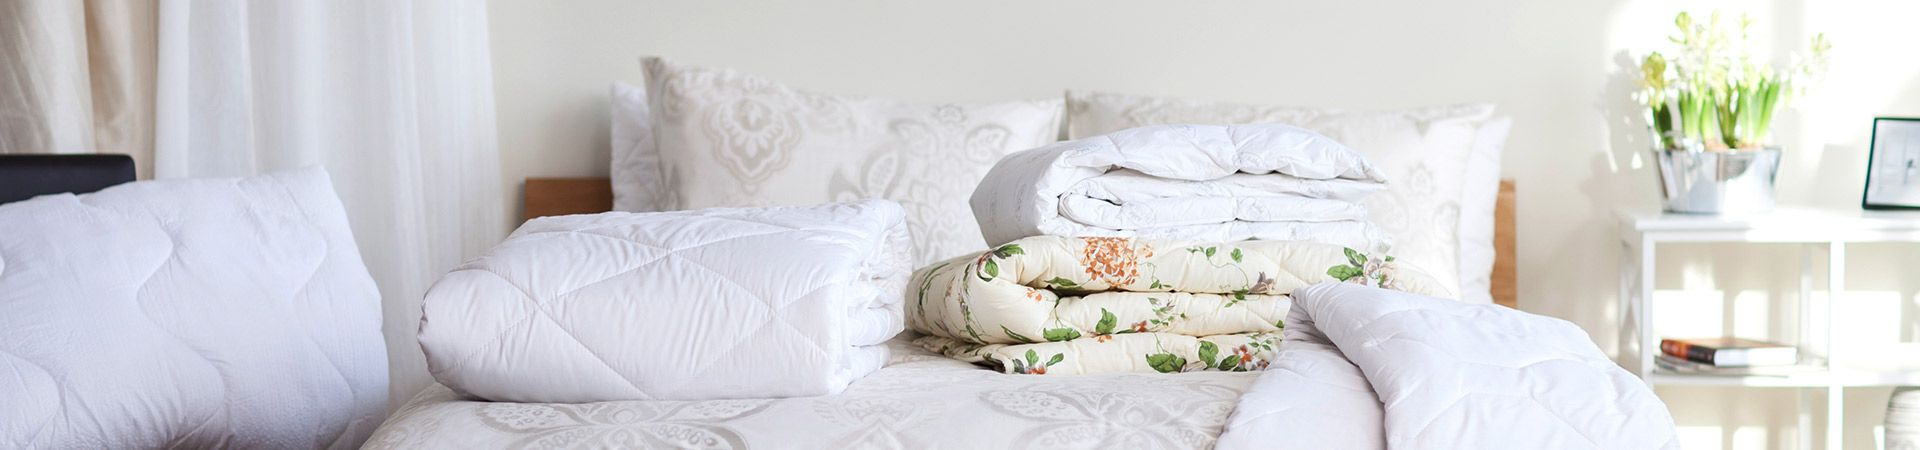 DUVETS_AND_PILLOWS